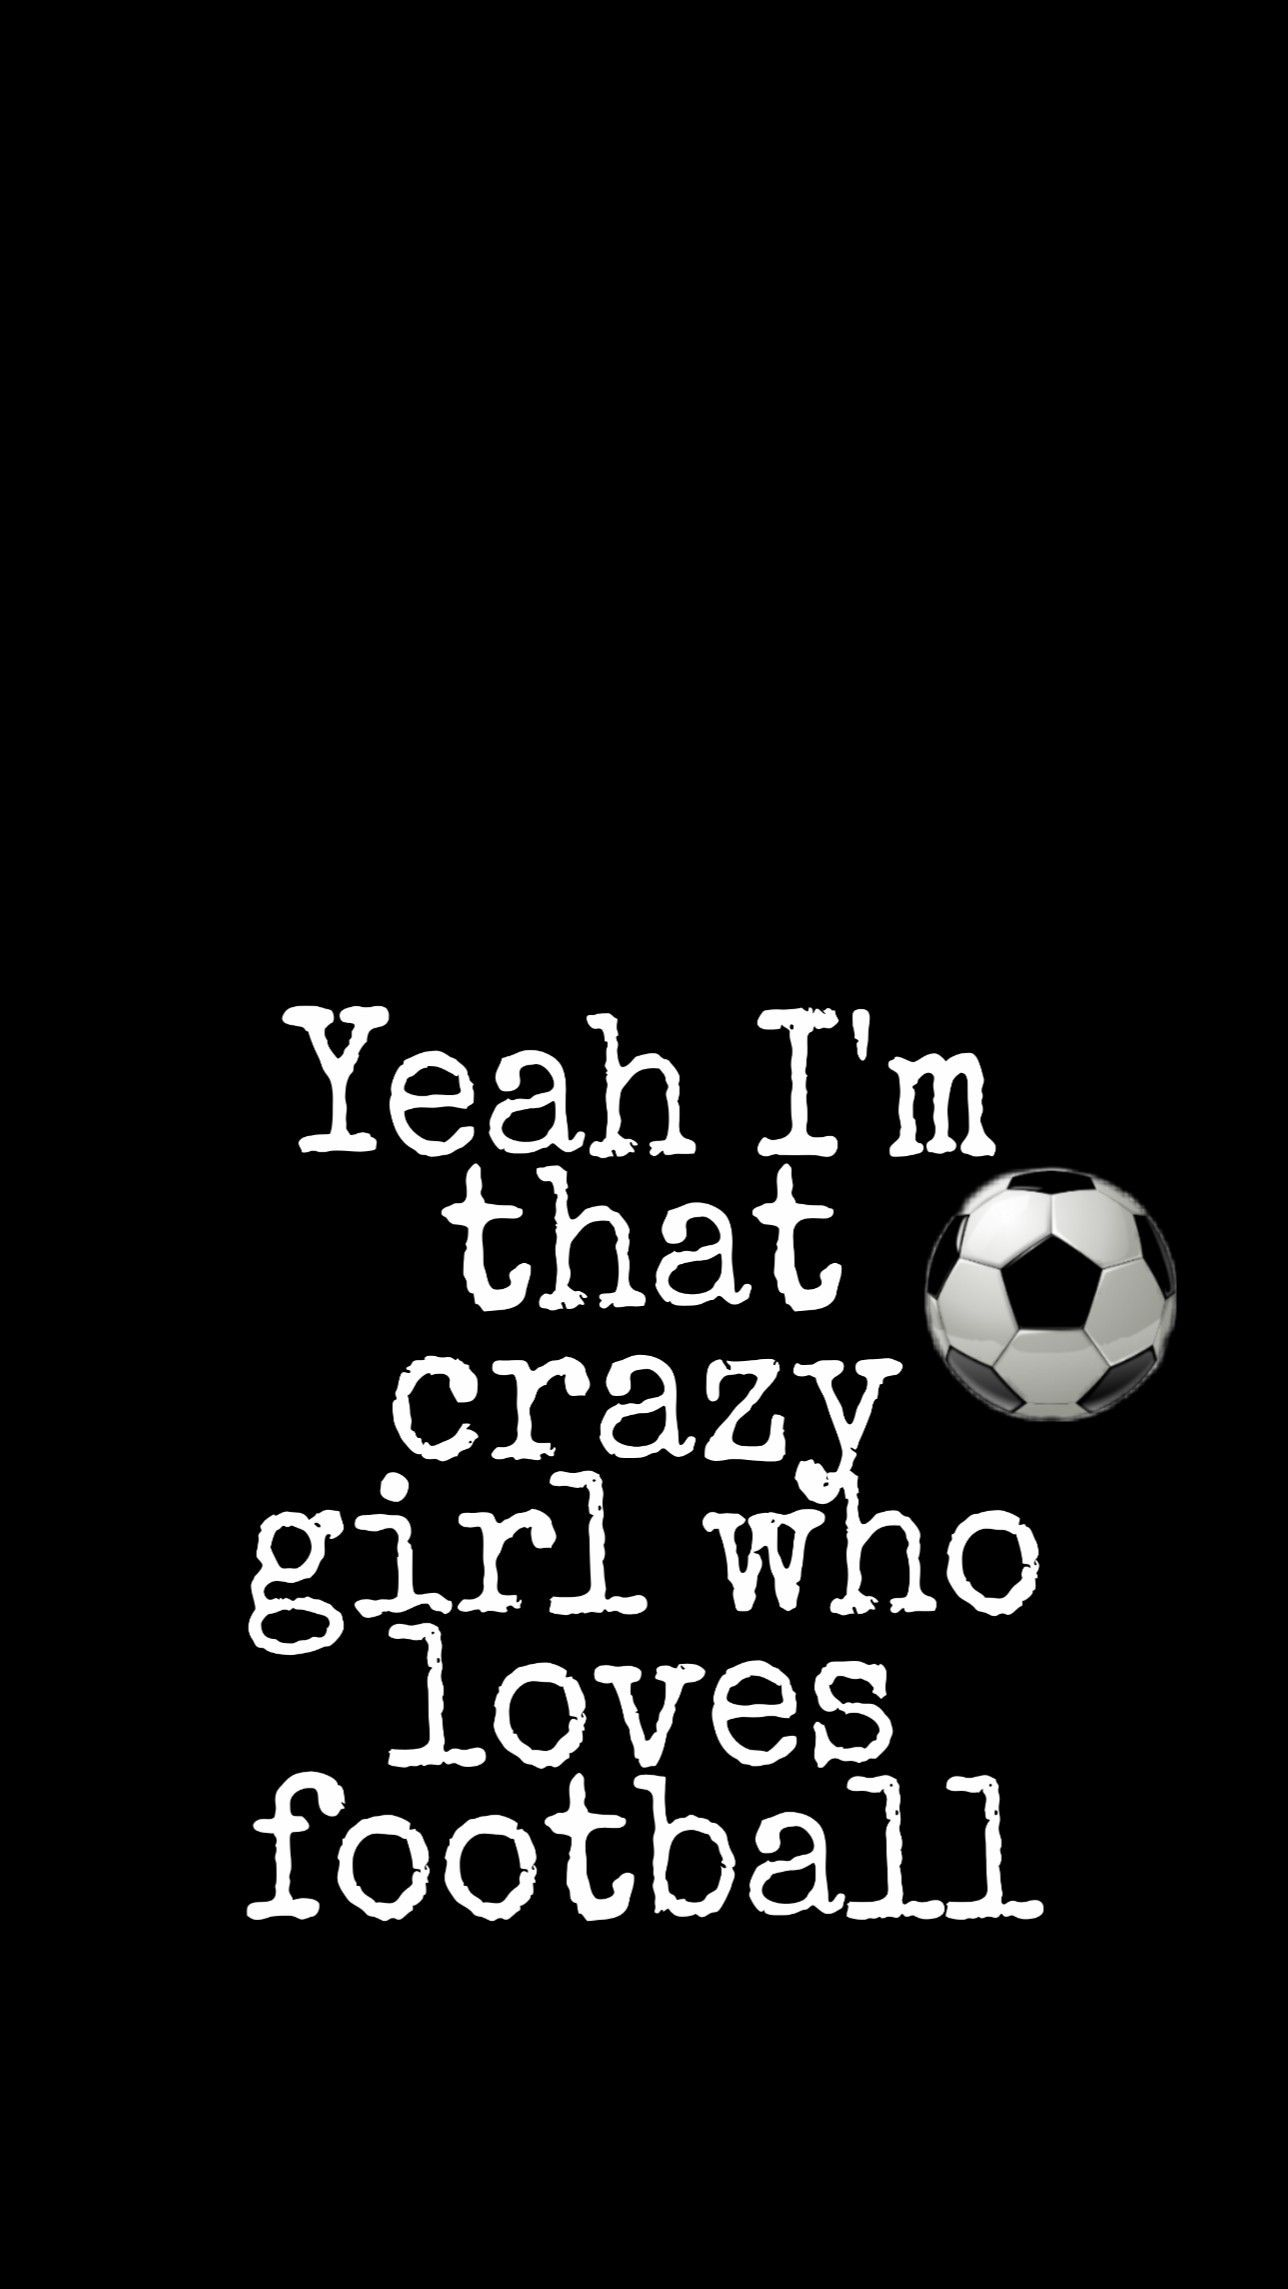 Football Girls Wallpaper In 2020 Soccer Quotes Football Girls Soccer Girl